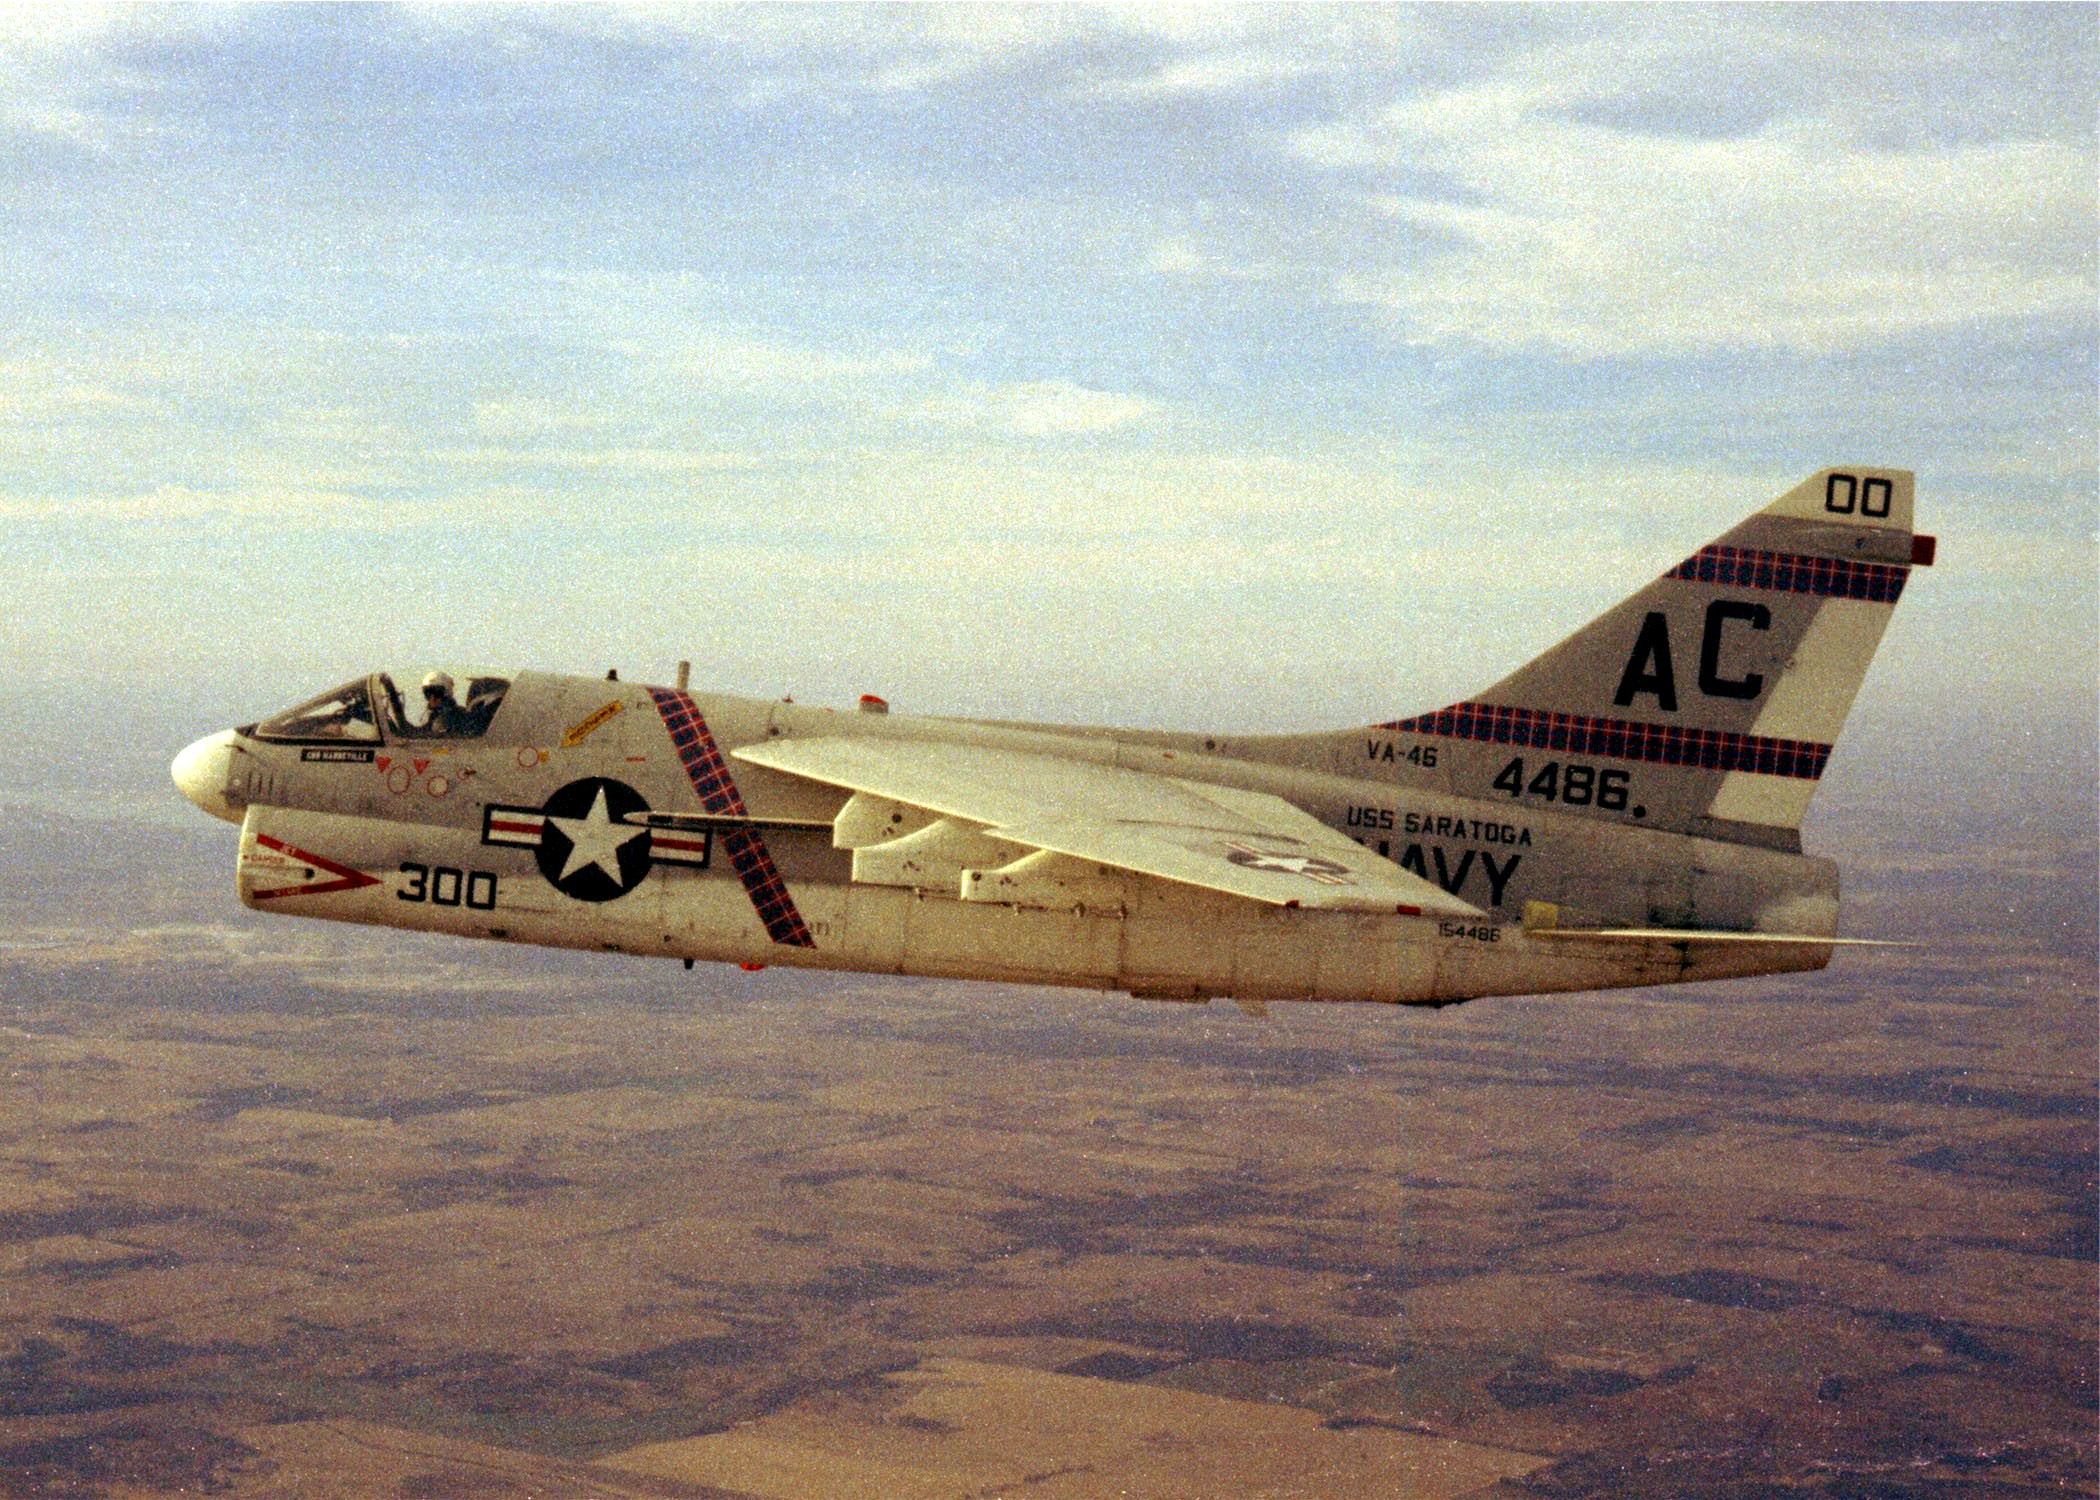 A-7B Corsair in VA-46 paint scheme.